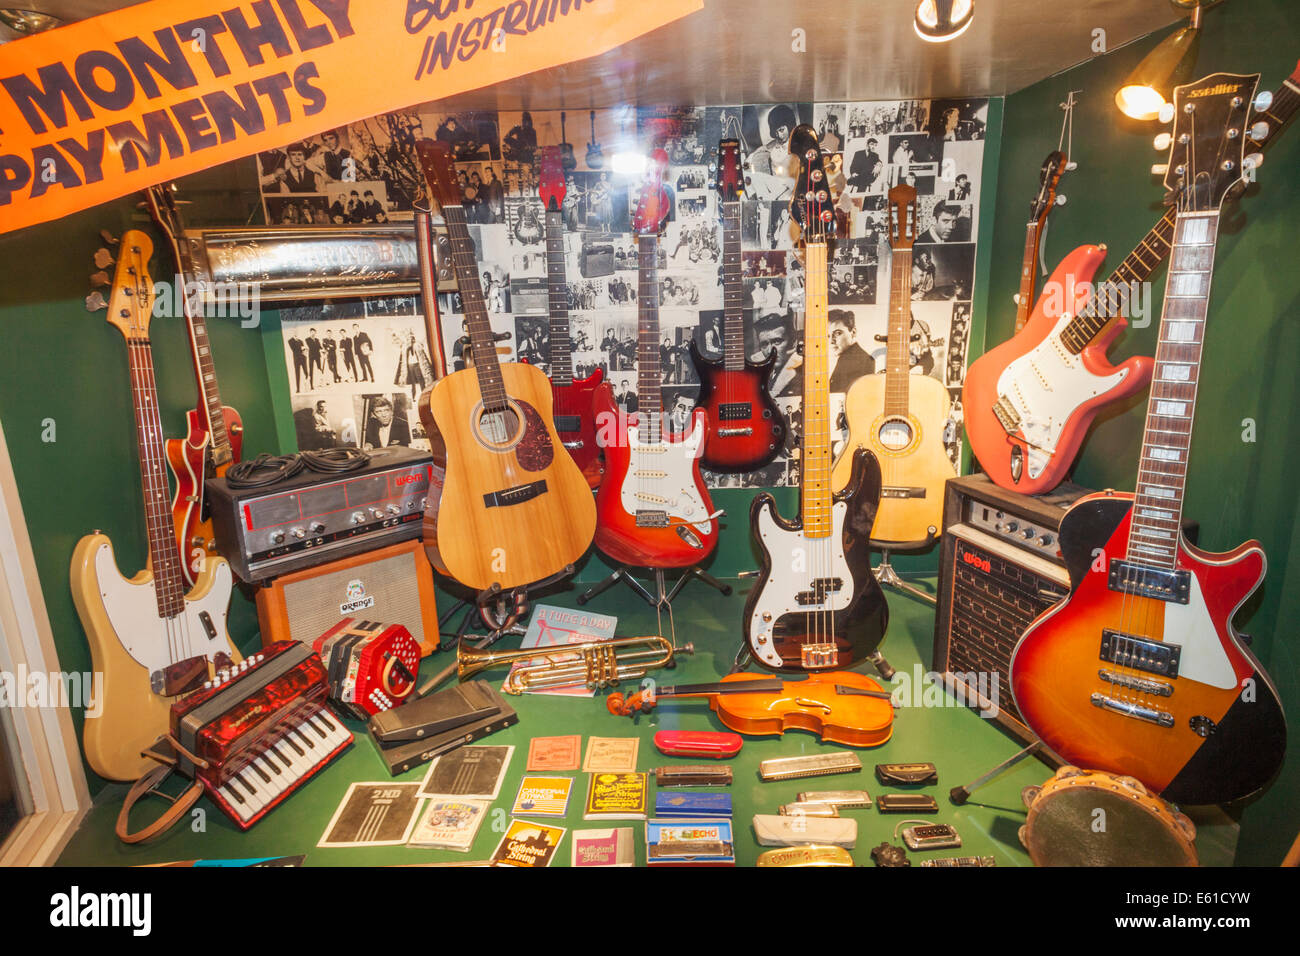 England, Merseyside, Liverpool, Albert Dock, The Beatles Story, Recreated Window of Hessys Music Centre that Closed - Stock Image